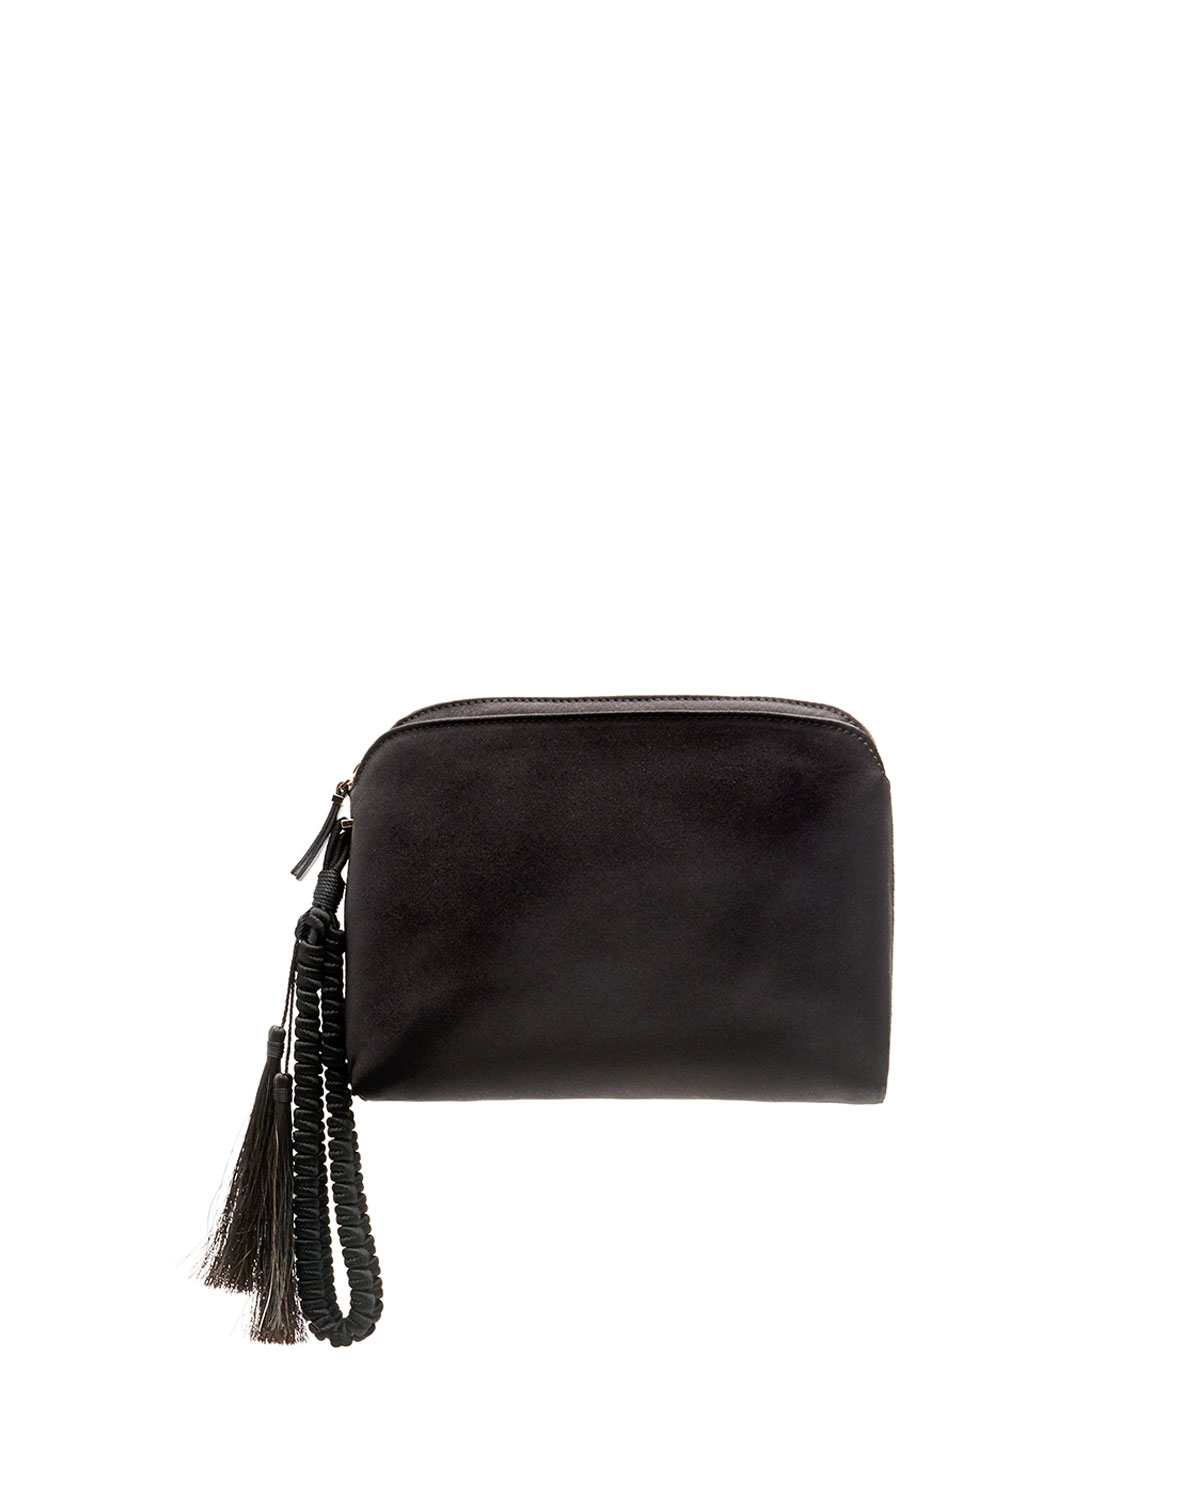 The Row Tassel Braided Mini Wristlet Bag